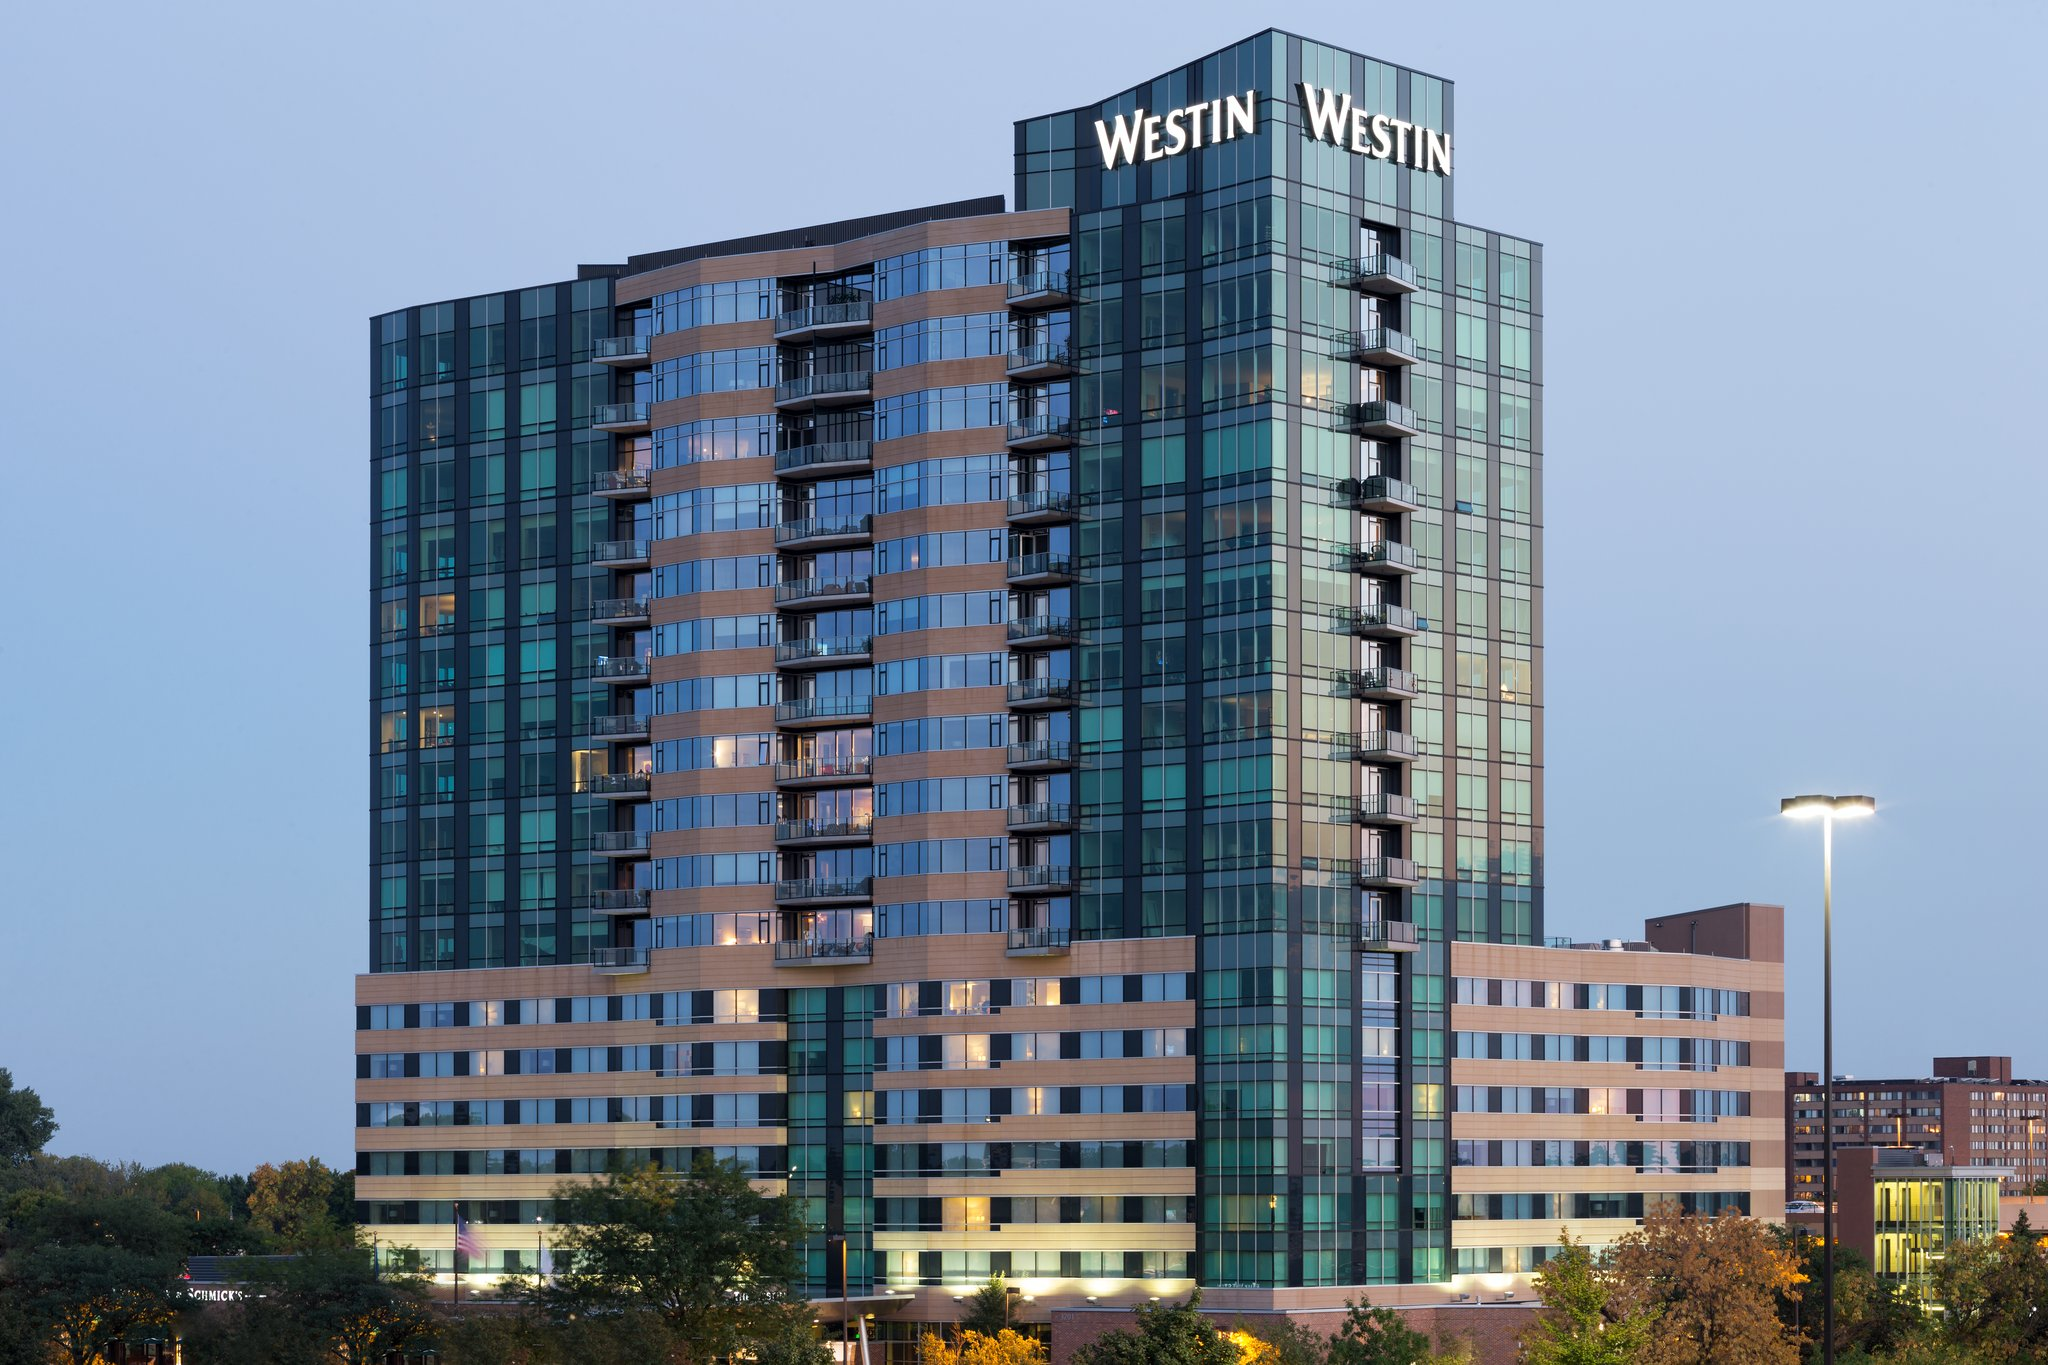 The Westin Edina Galleria